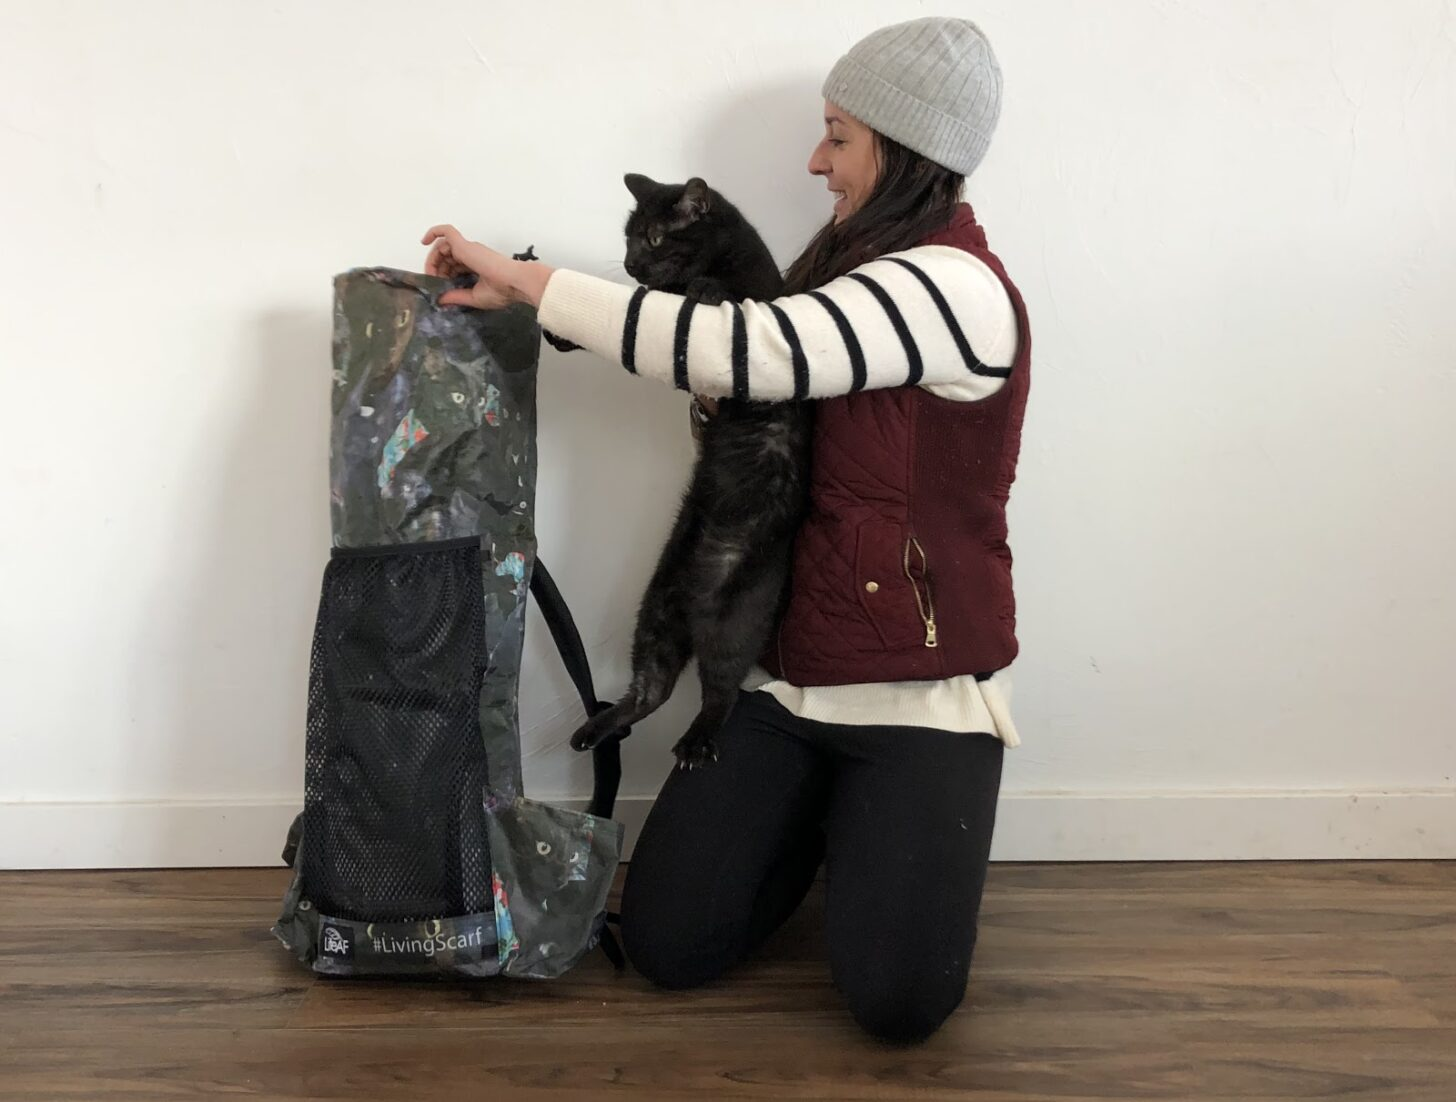 a woman trying to stuff a cat into a backpack